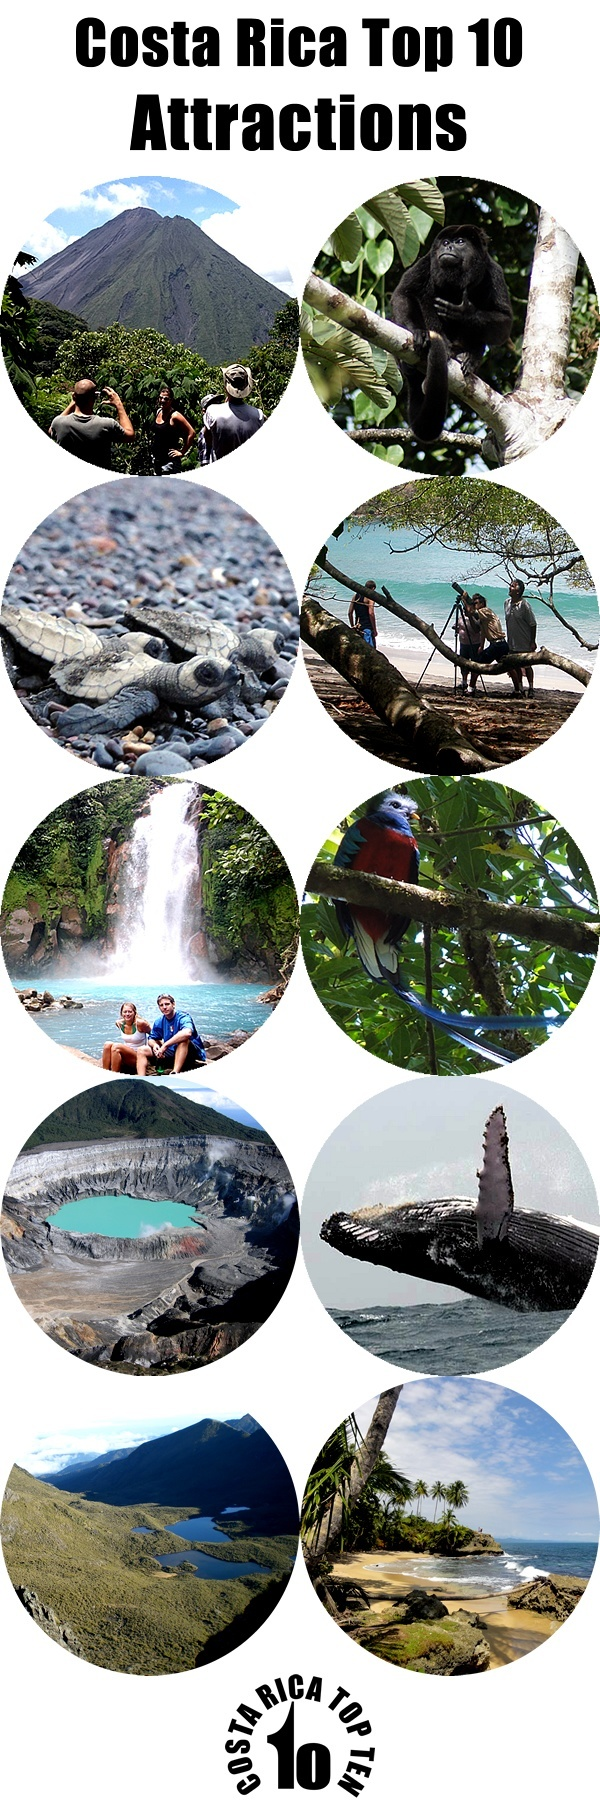 Costa Rica Top 10 Points of Interest & Attractions